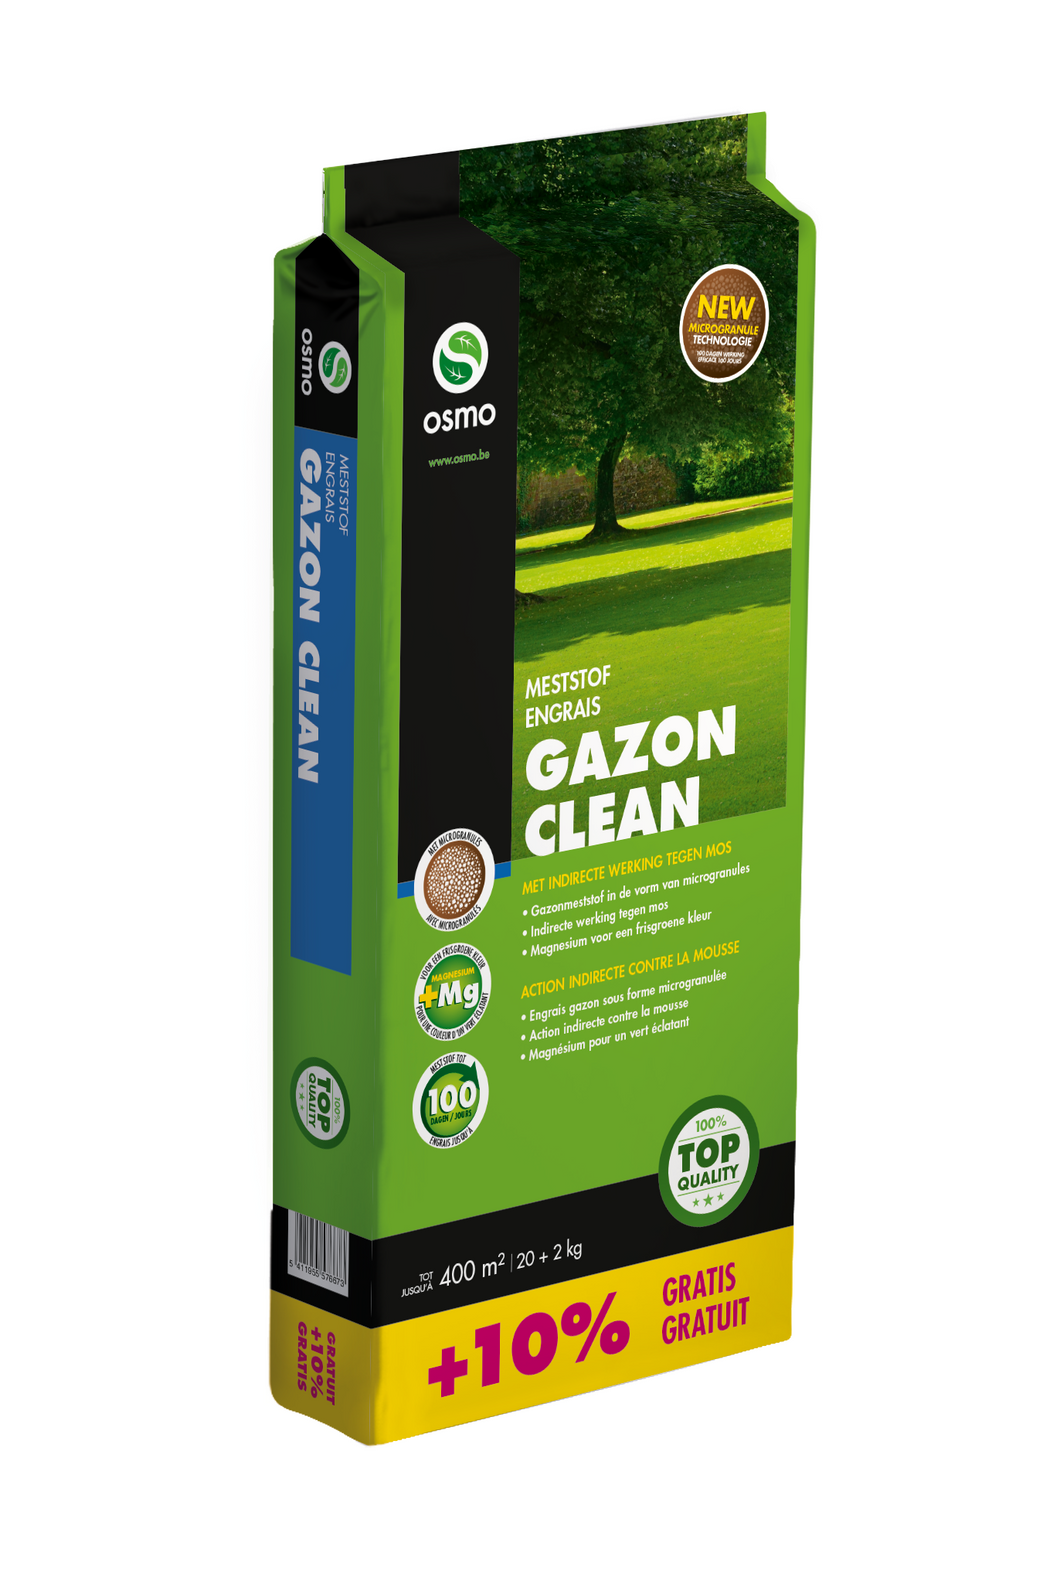 Gazon Clean - Microgranules Osmo